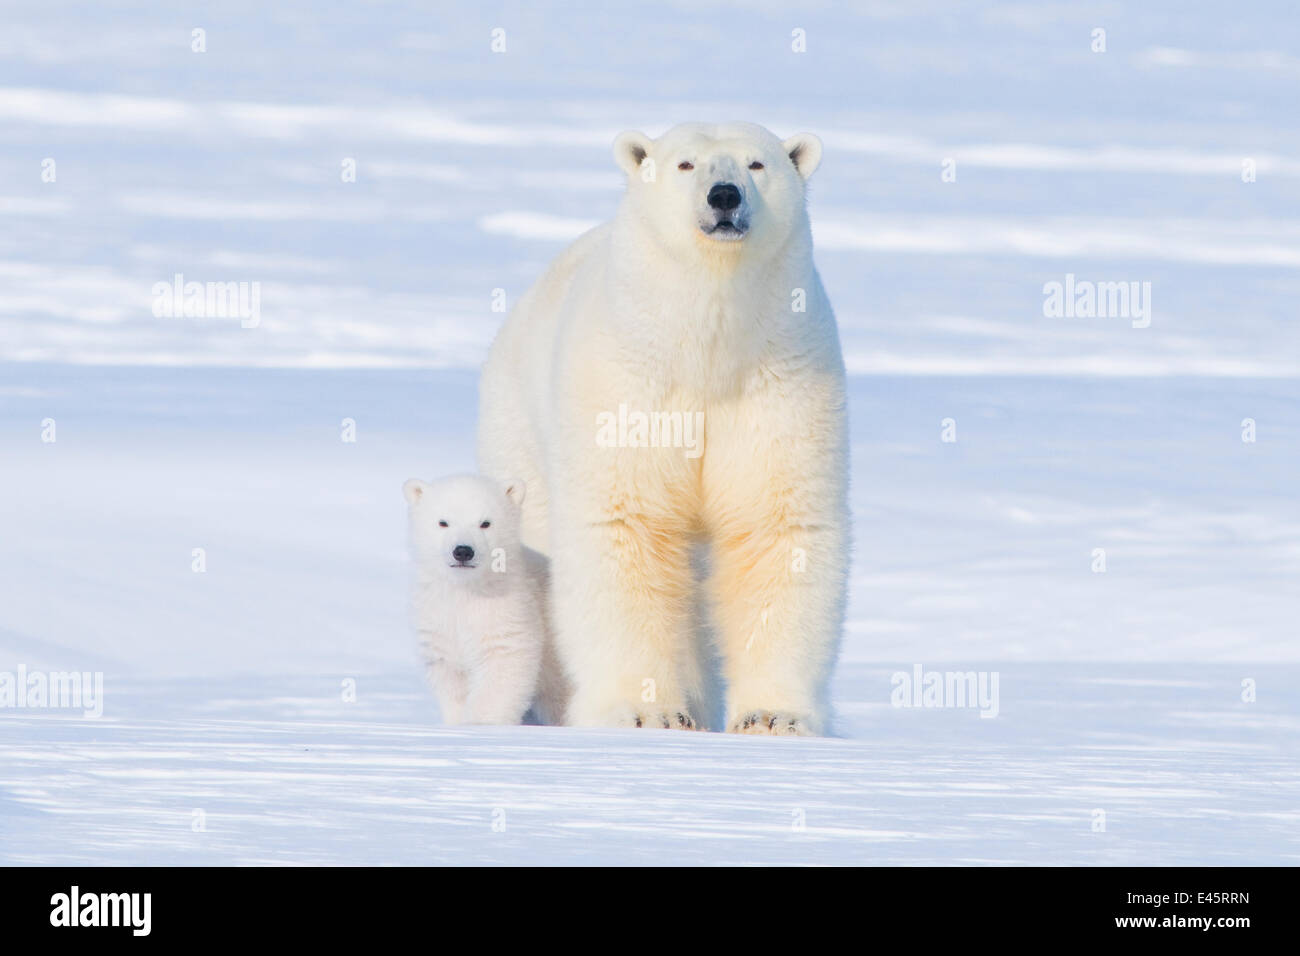 Polar bear (Ursus maritimus) sow with her  cub outside their den in late winter, Arctic coast of Alaska - Stock Image